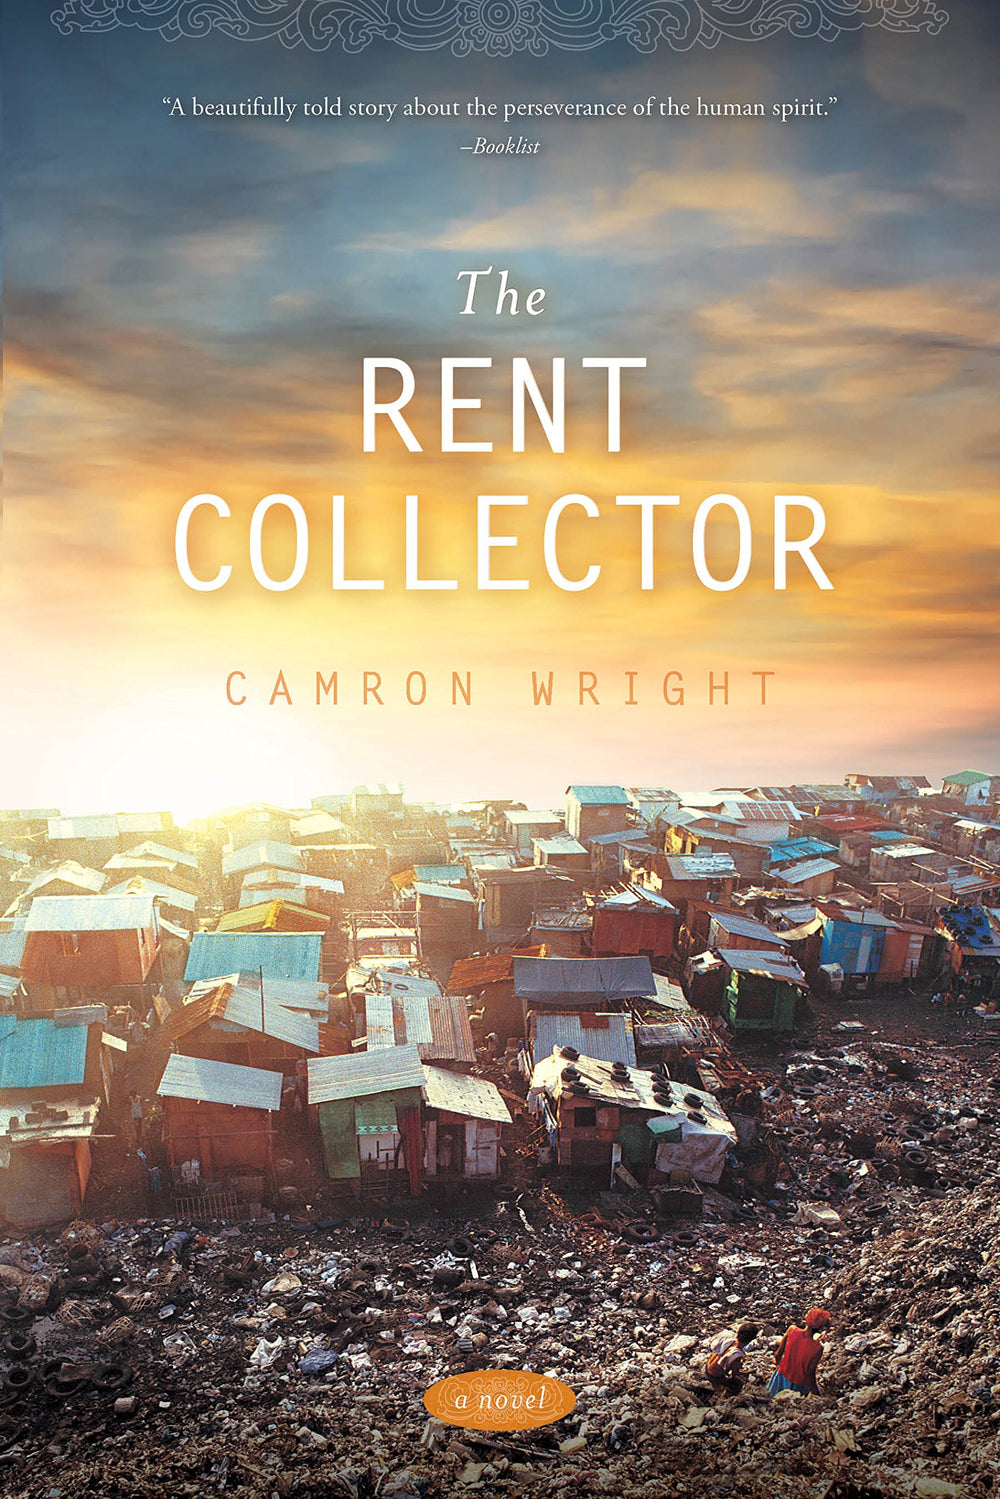 The Rent Collector by Camron Wright